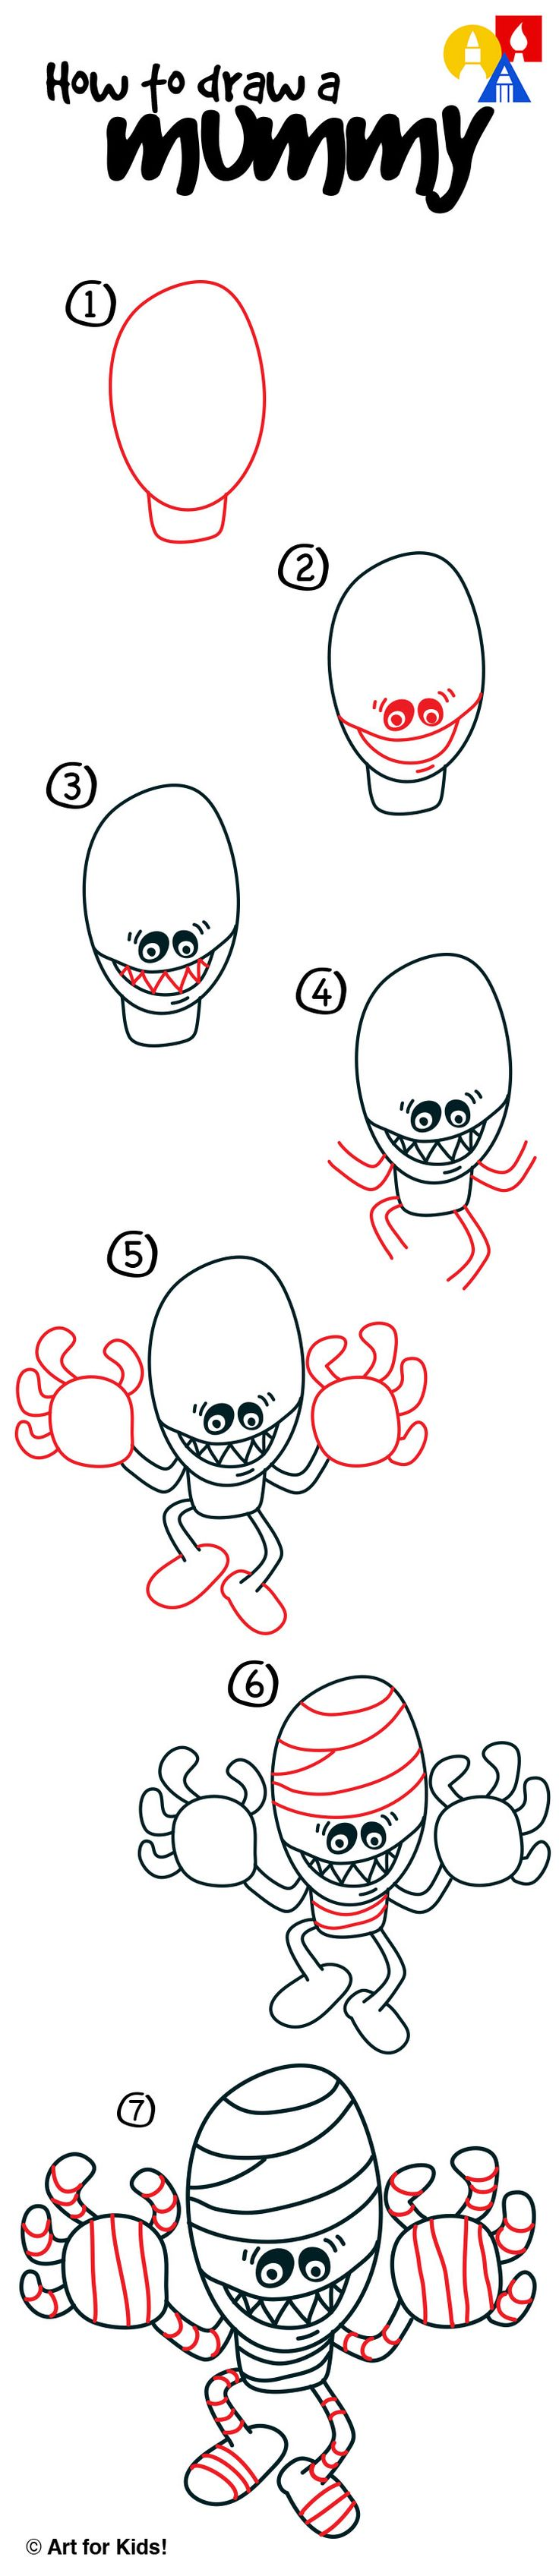 How To Draw A Mummy  Art For Kids Hub